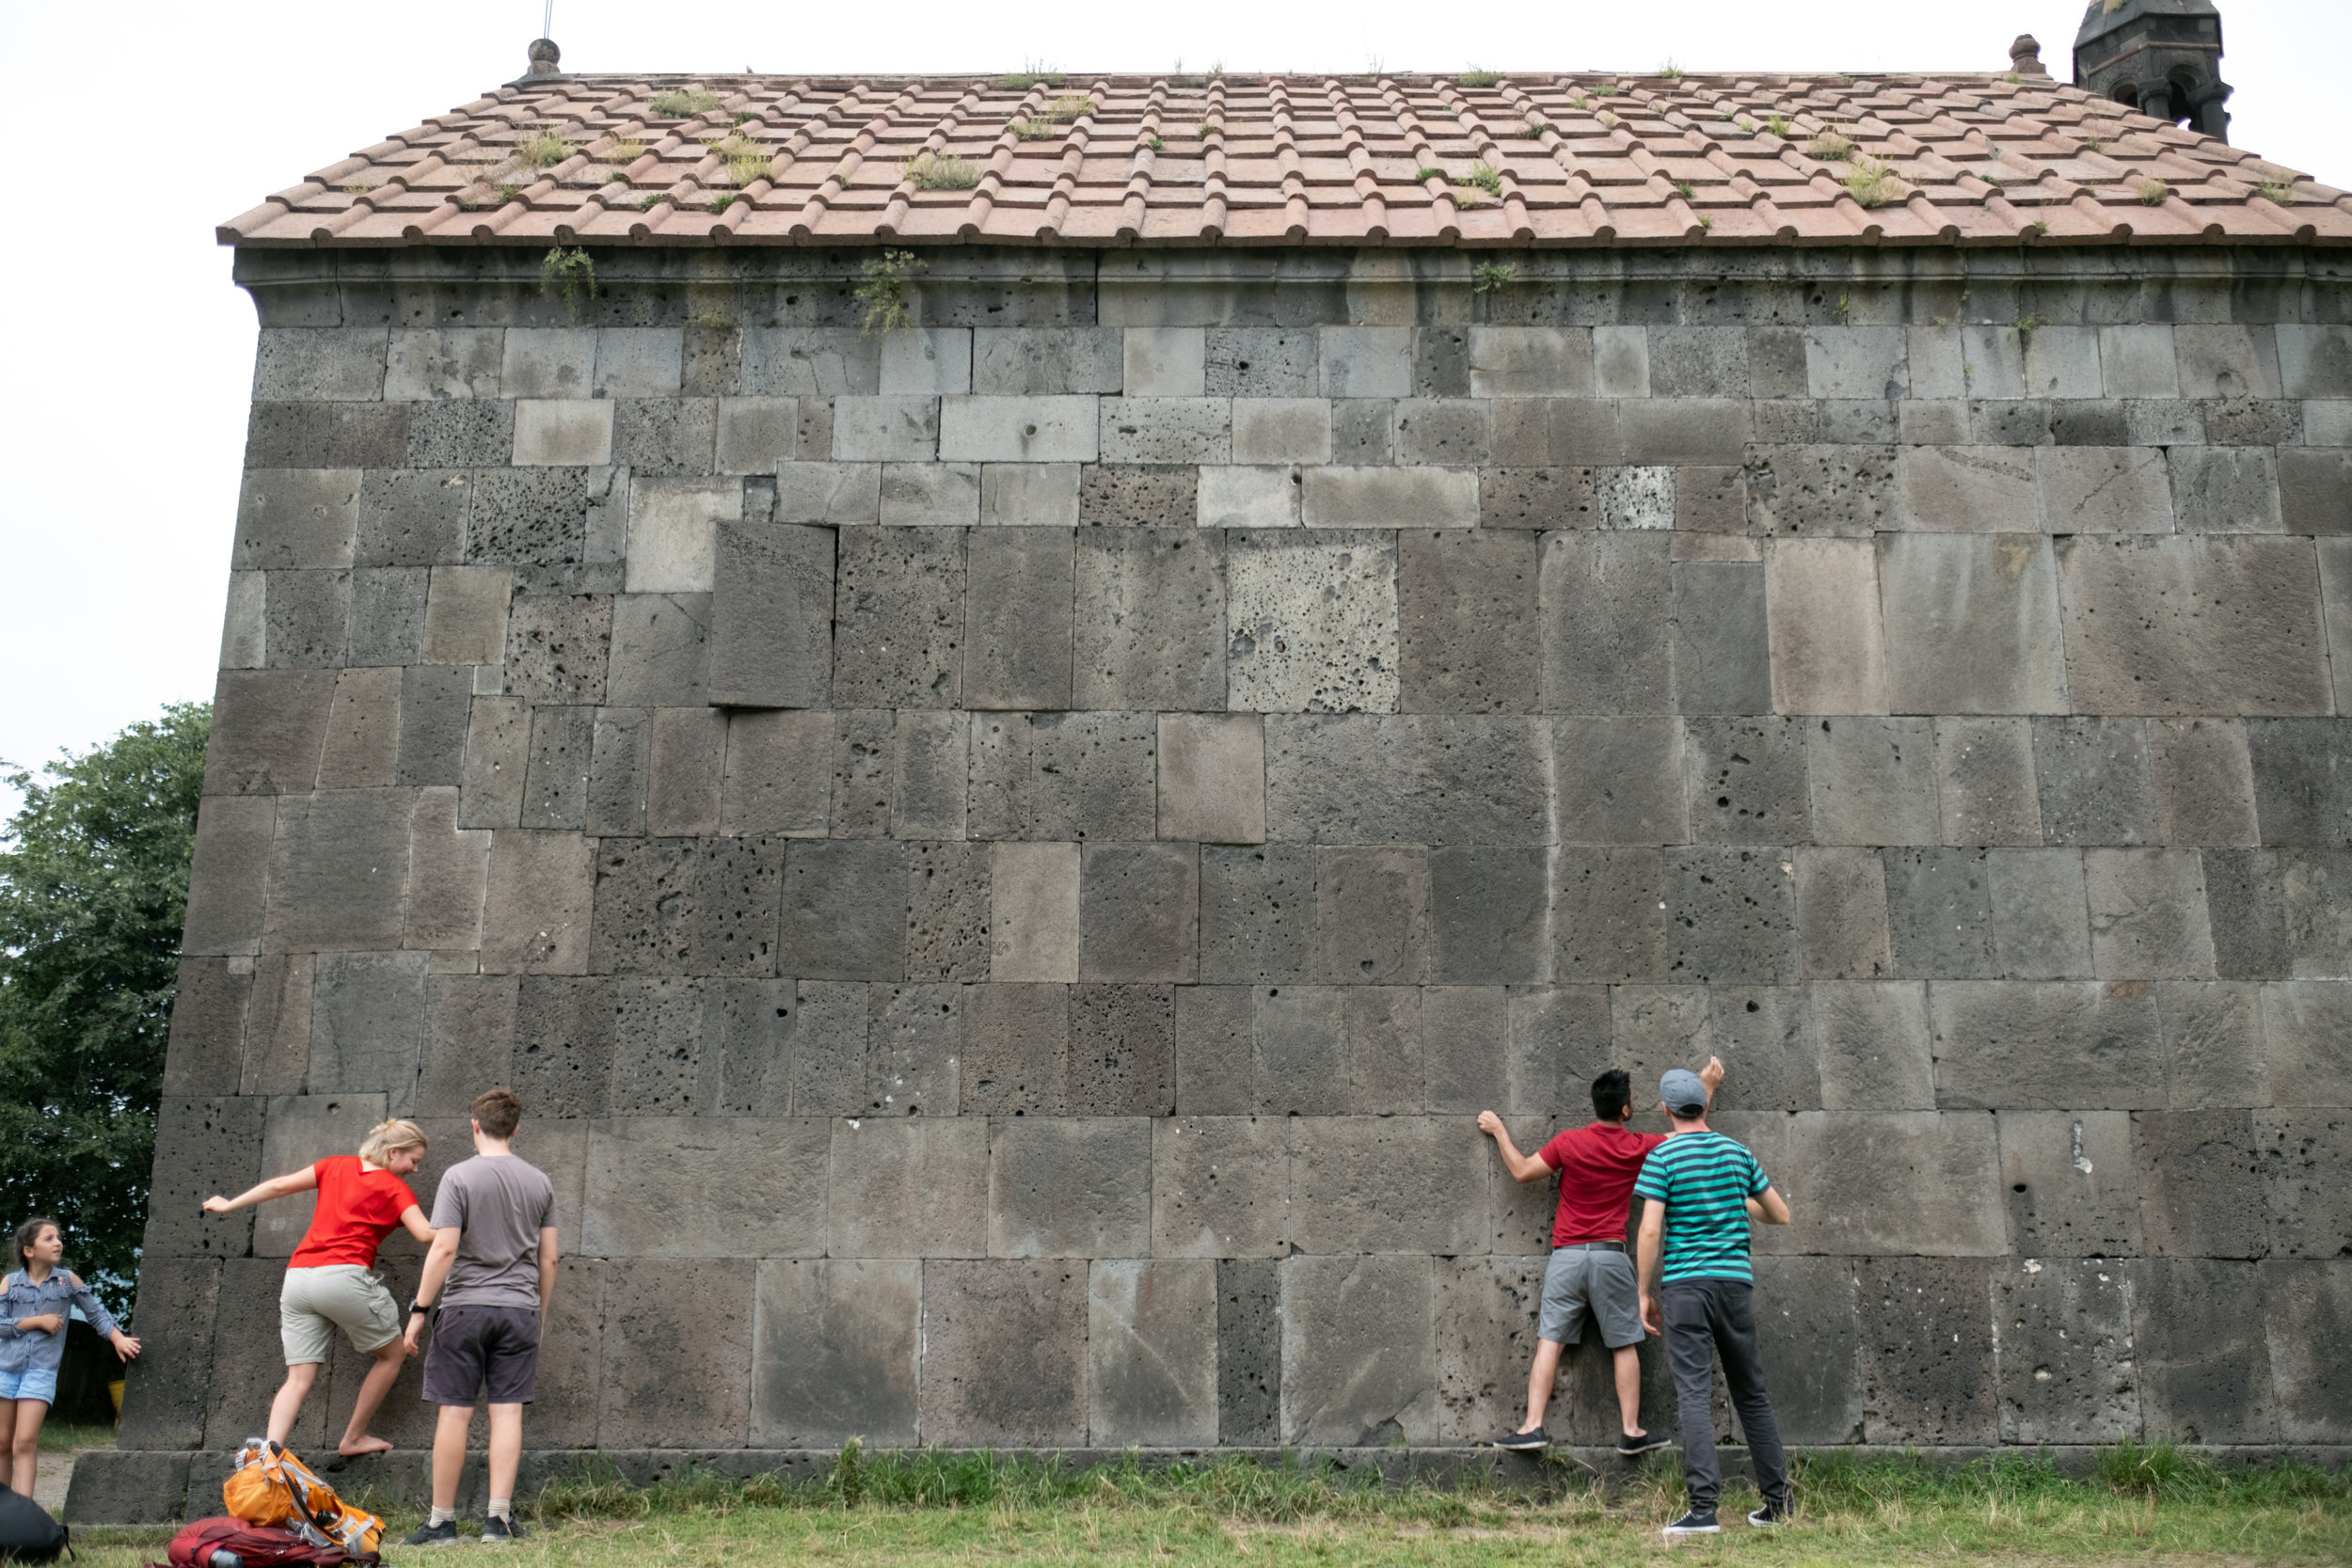 A tour group is visiting the Haghbat monastery in Armenia